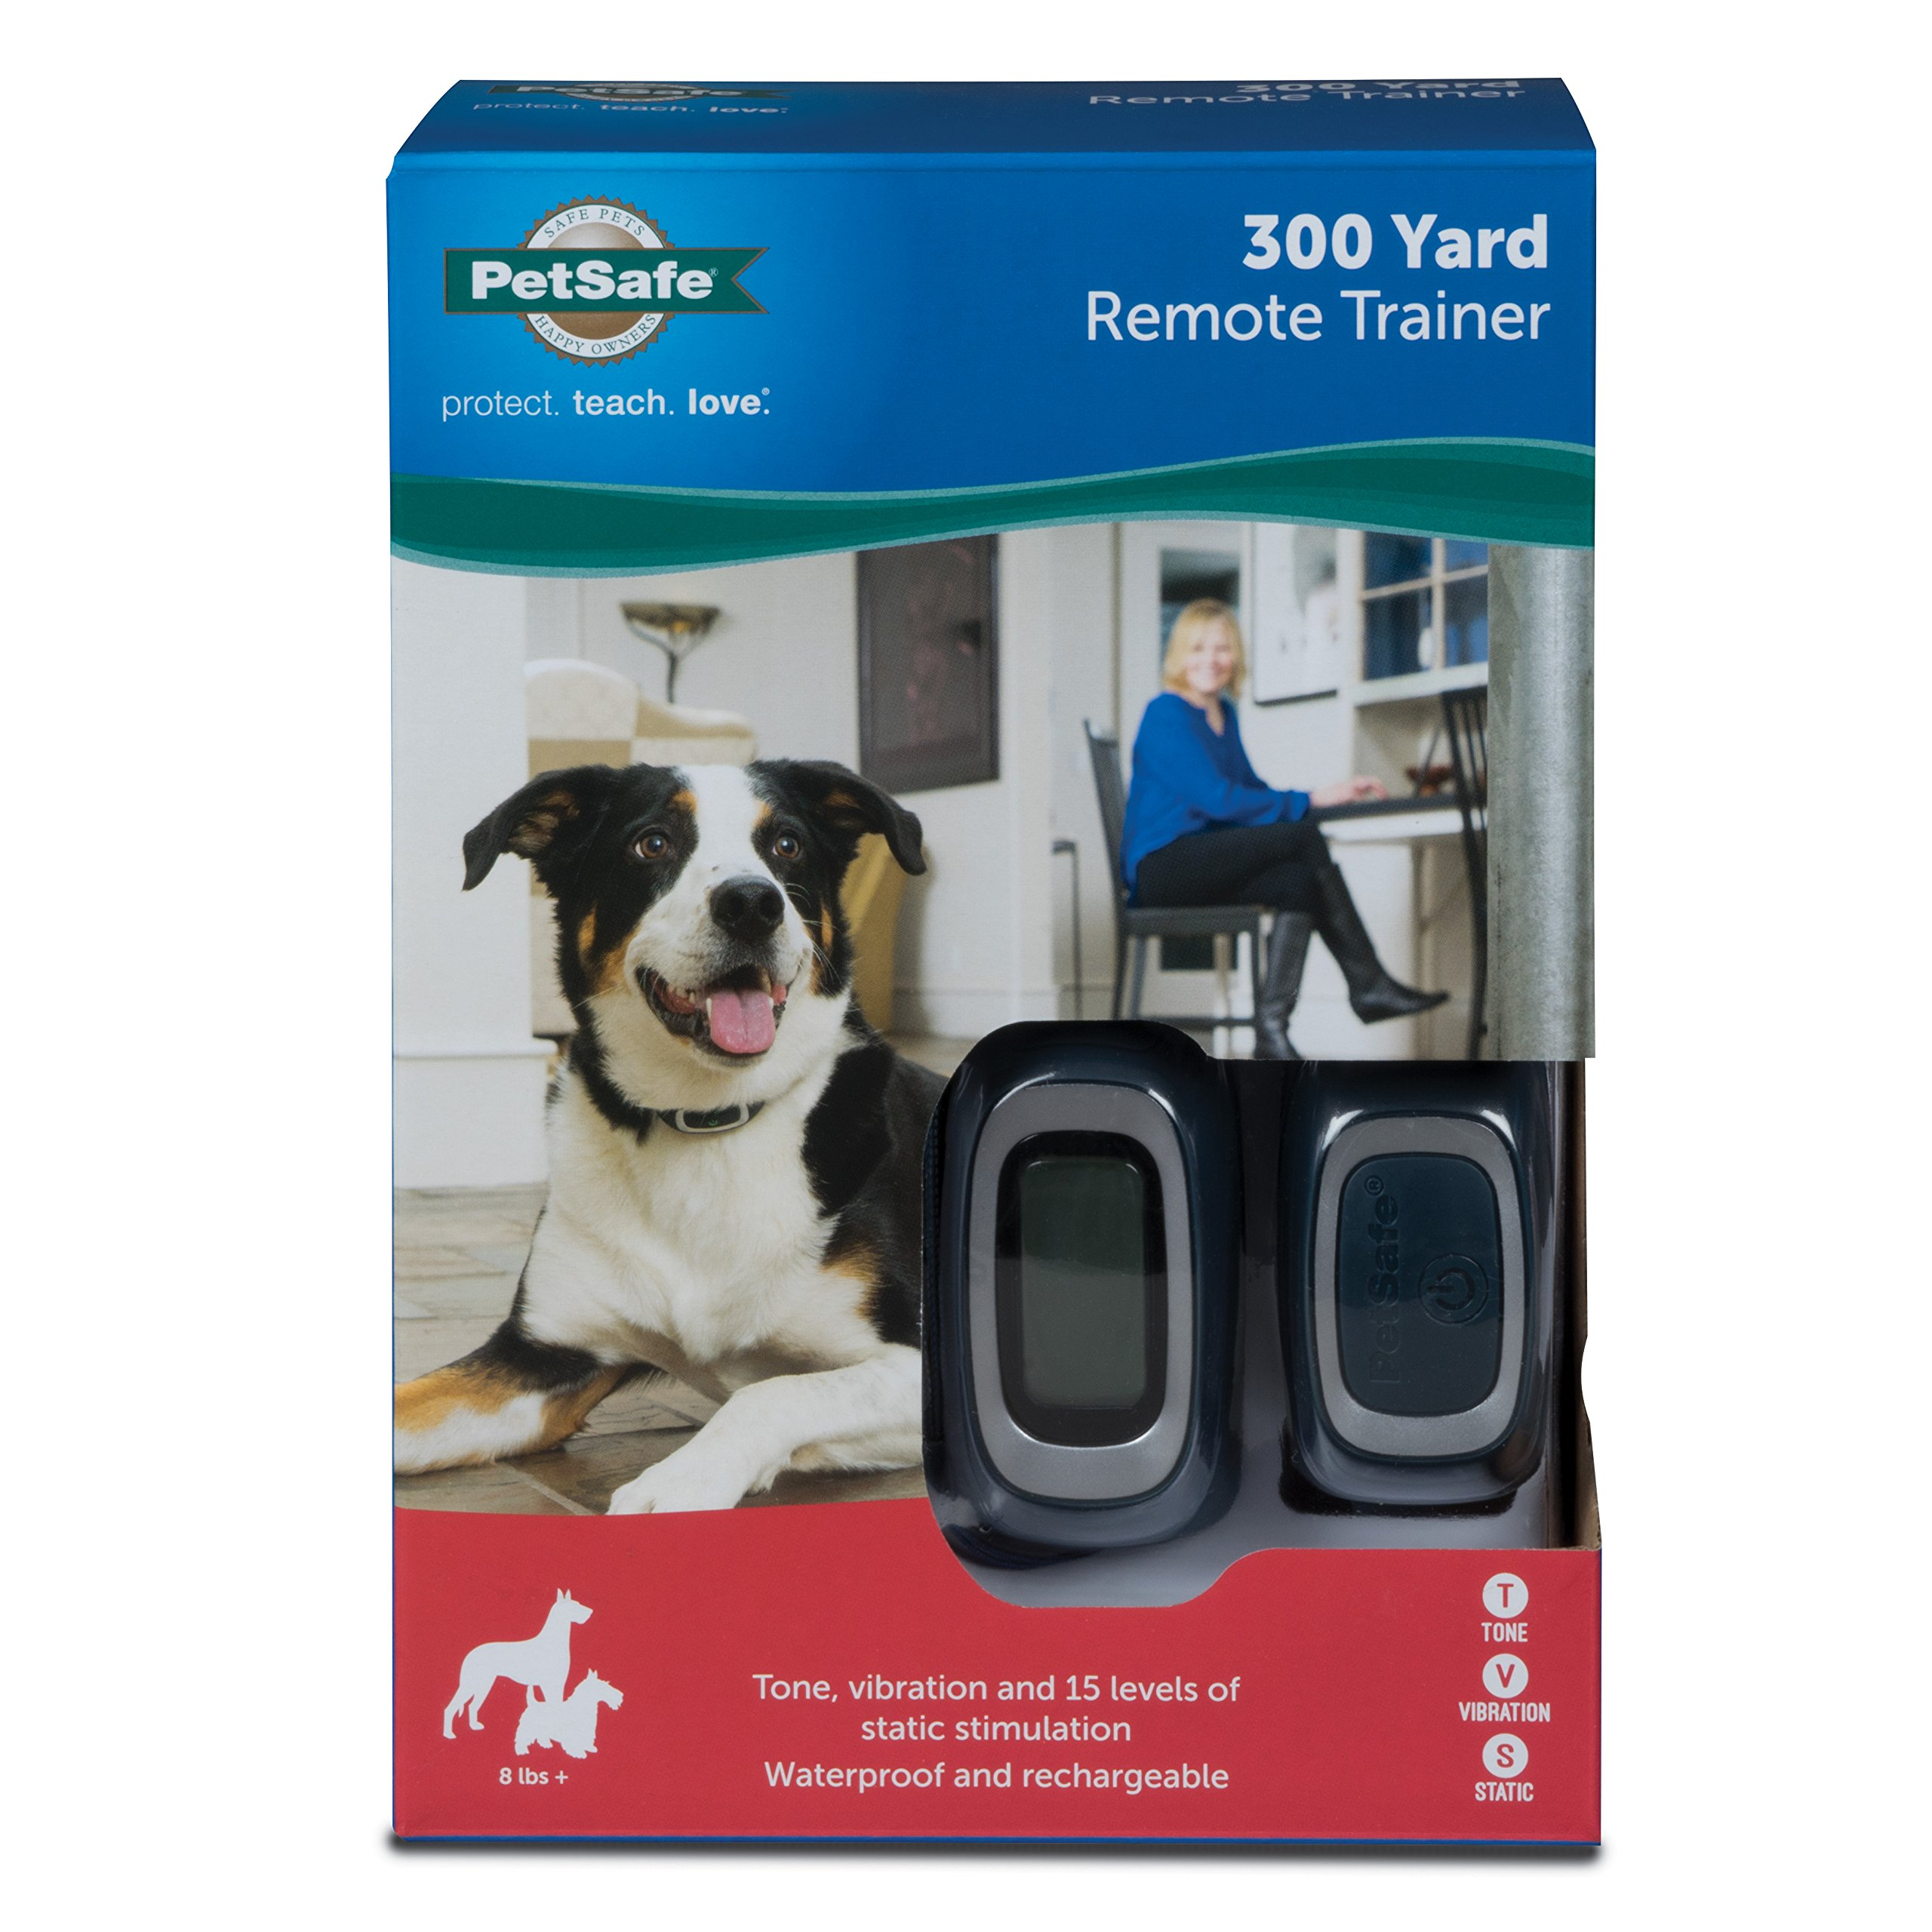 PetSafe 300 Yard Remote Trainer, Rechargeable, Waterproof, Tone / Vibration / 15 Levels of Static Stimulation for dogs over 8 lb. by PetSafe (Image #2)